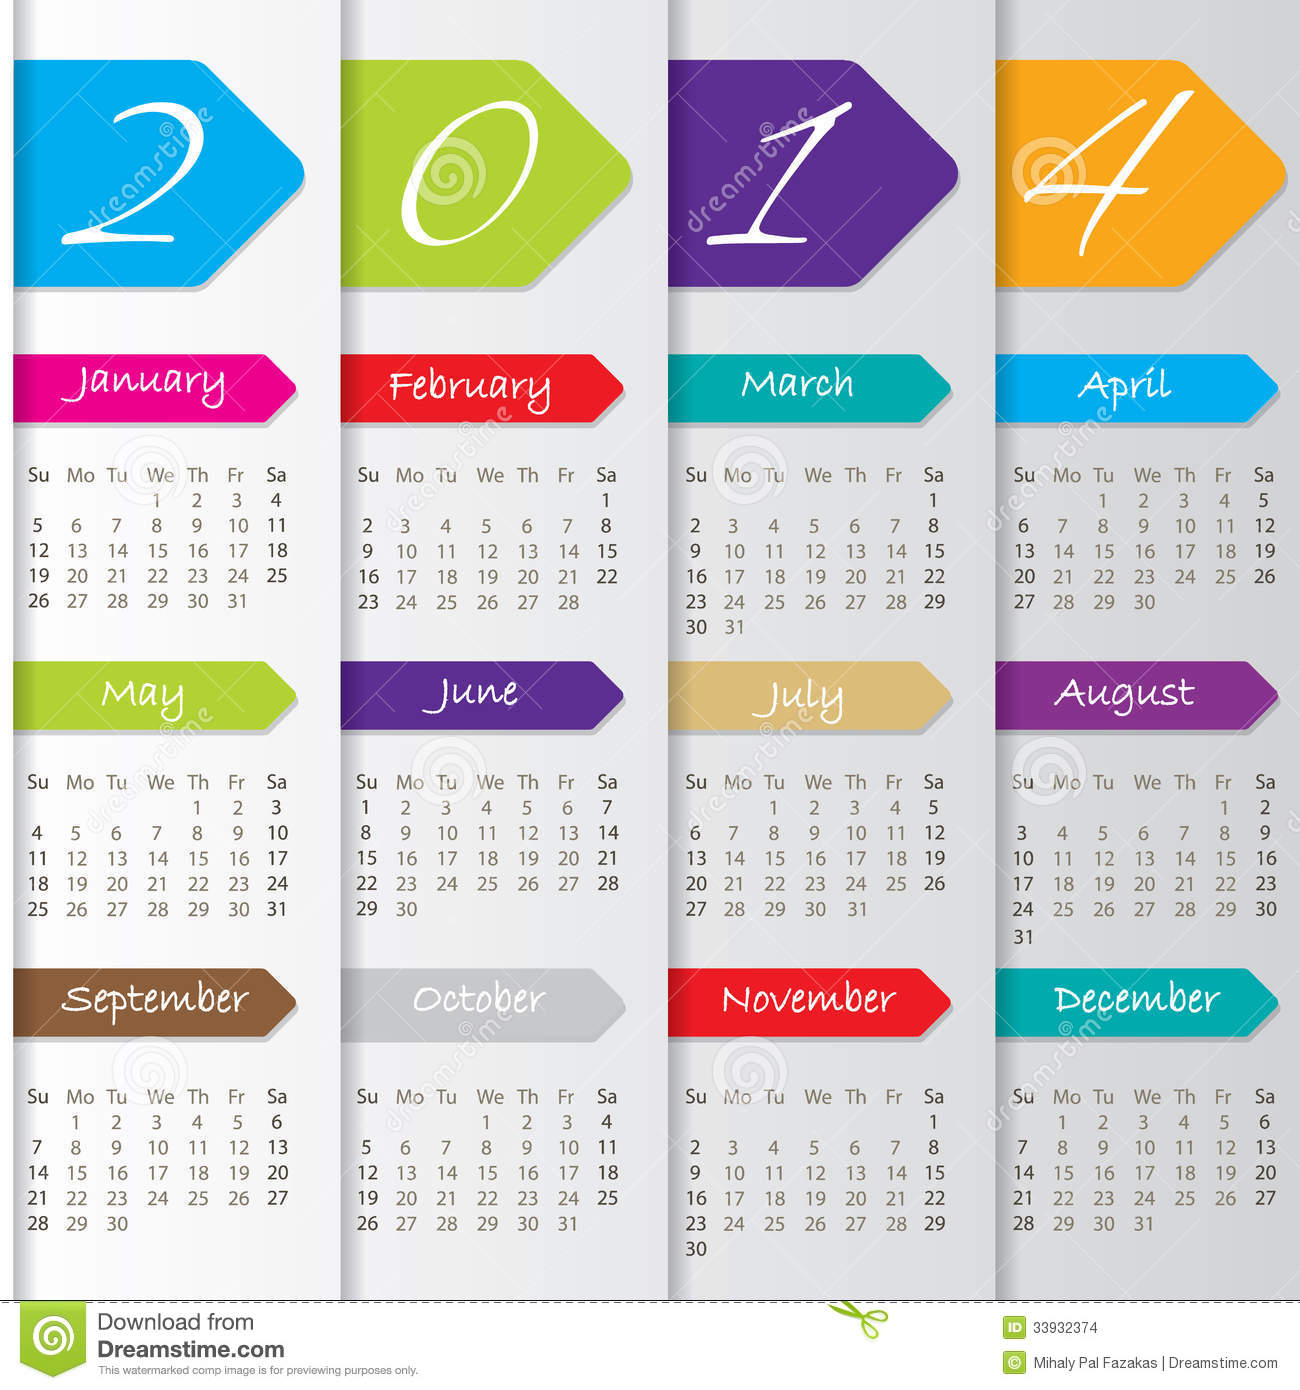 Yearly Calendar Design : Arrow calendar design for stock images image